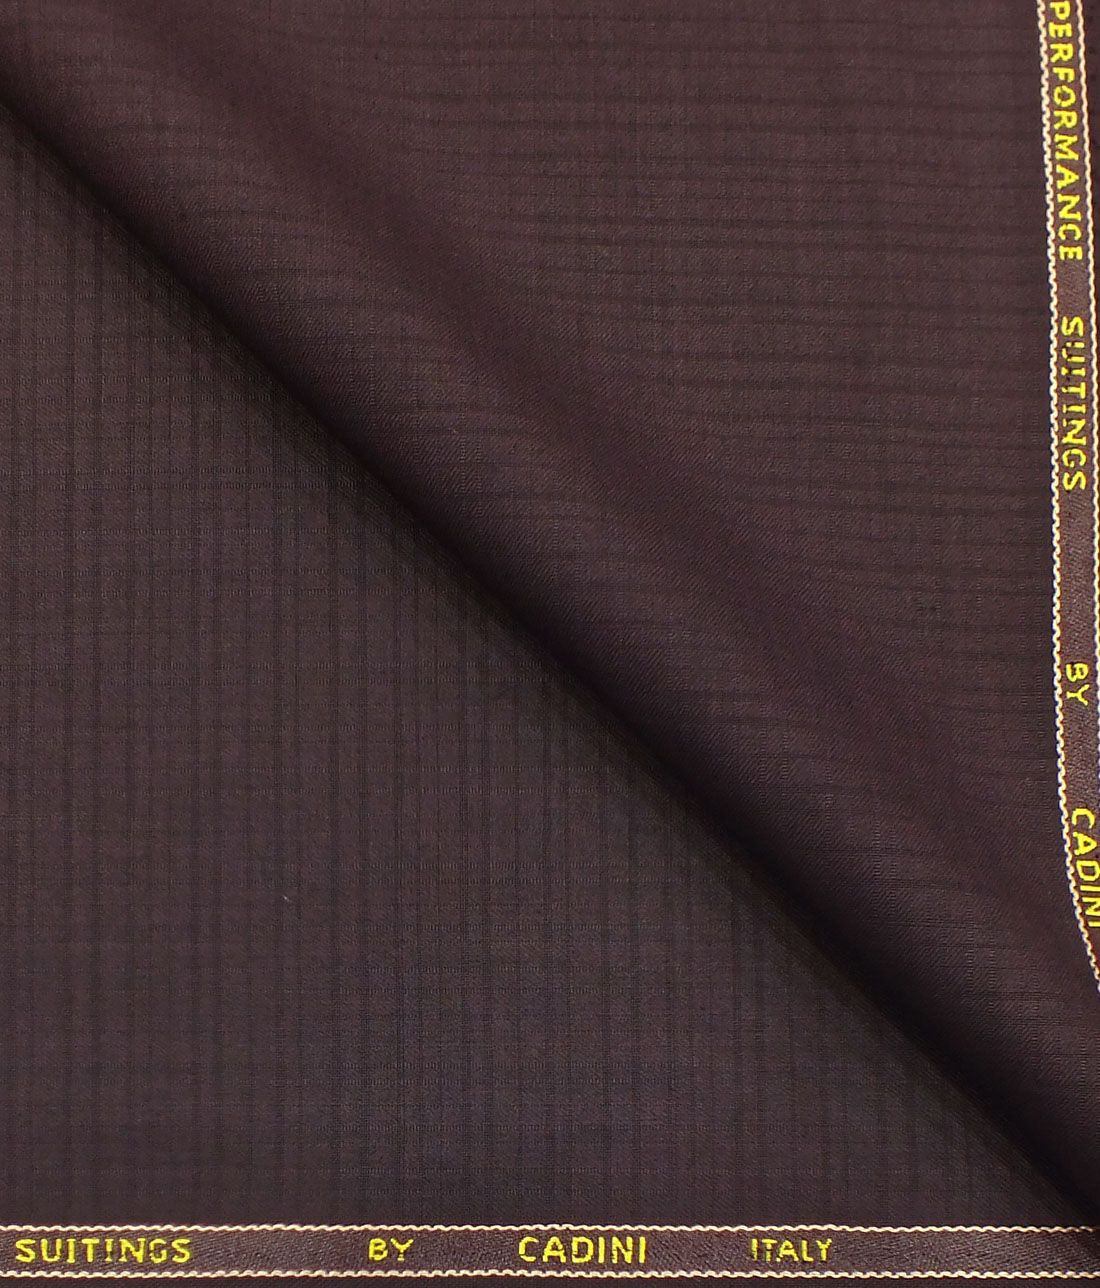 95b1645cf Cadini Italy by Siyaram s Dark Plum Purple Self Design Terry Rayon Trouser  or 3 Piece Suit Fabric (Unstitched - 1.25 Mtr)